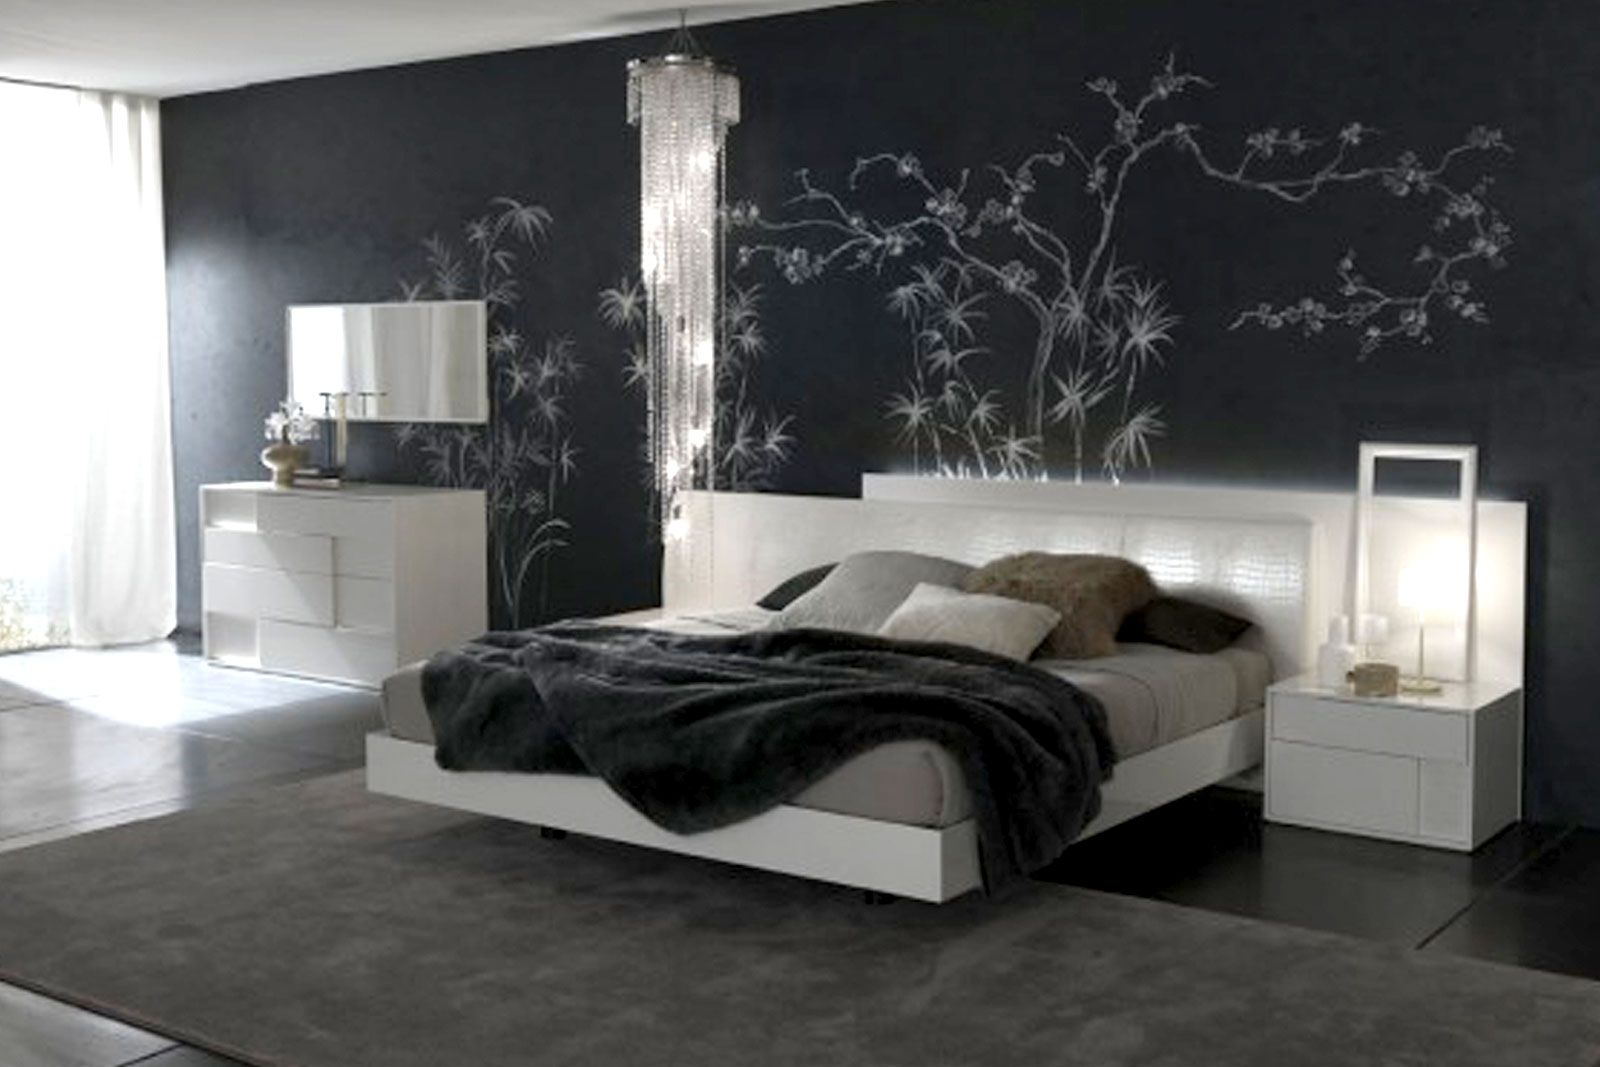 luxurious black grey and silver bedroom with mural decorroom ideas